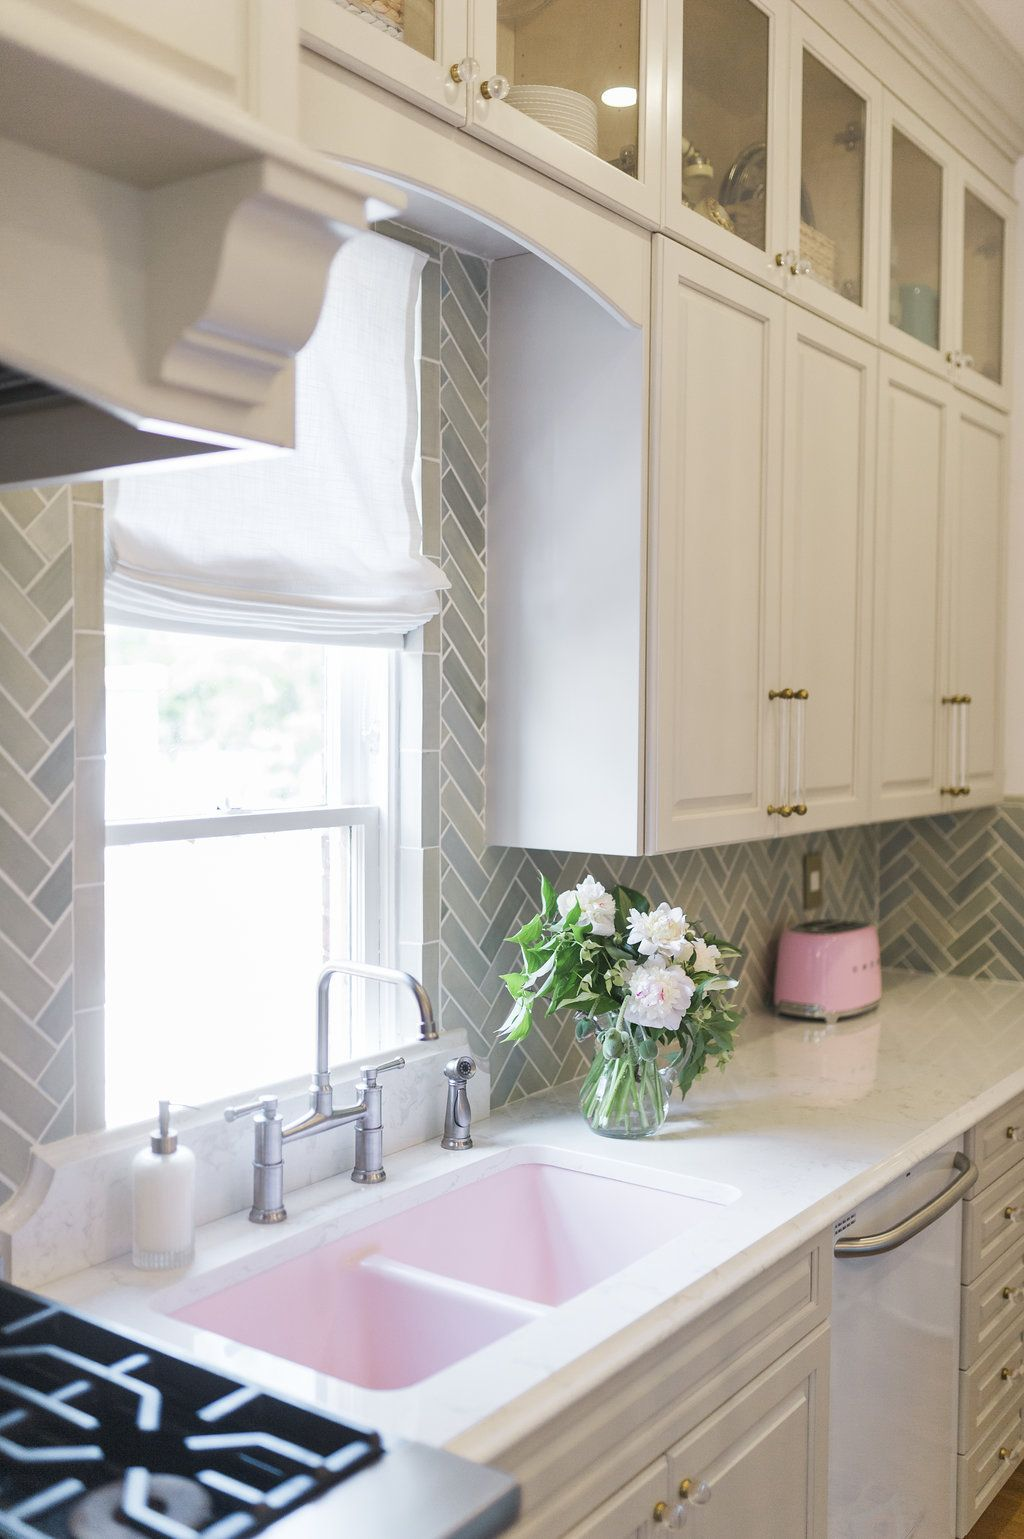 how to run kitchen cabinets across a low window kitchen cabinet design best kitchen designs on kitchen cabinets around window id=31872